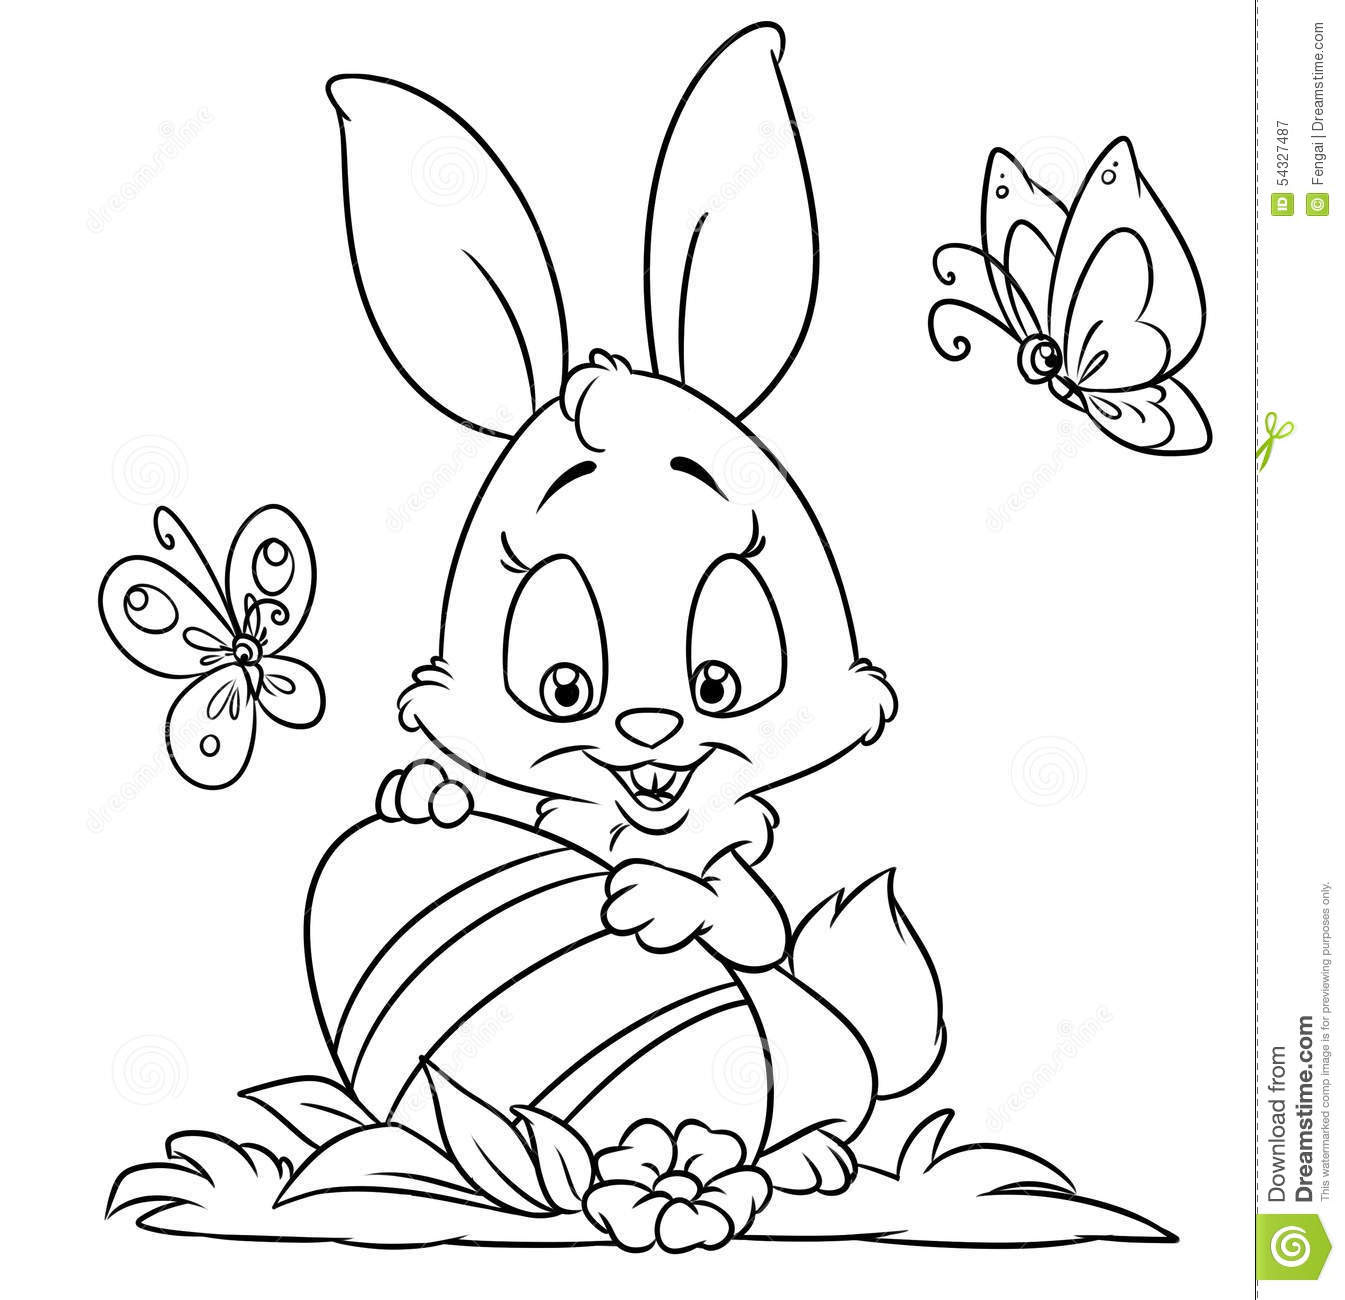 Happy Easter Bunny Coloring Pages Stock Illustration ...